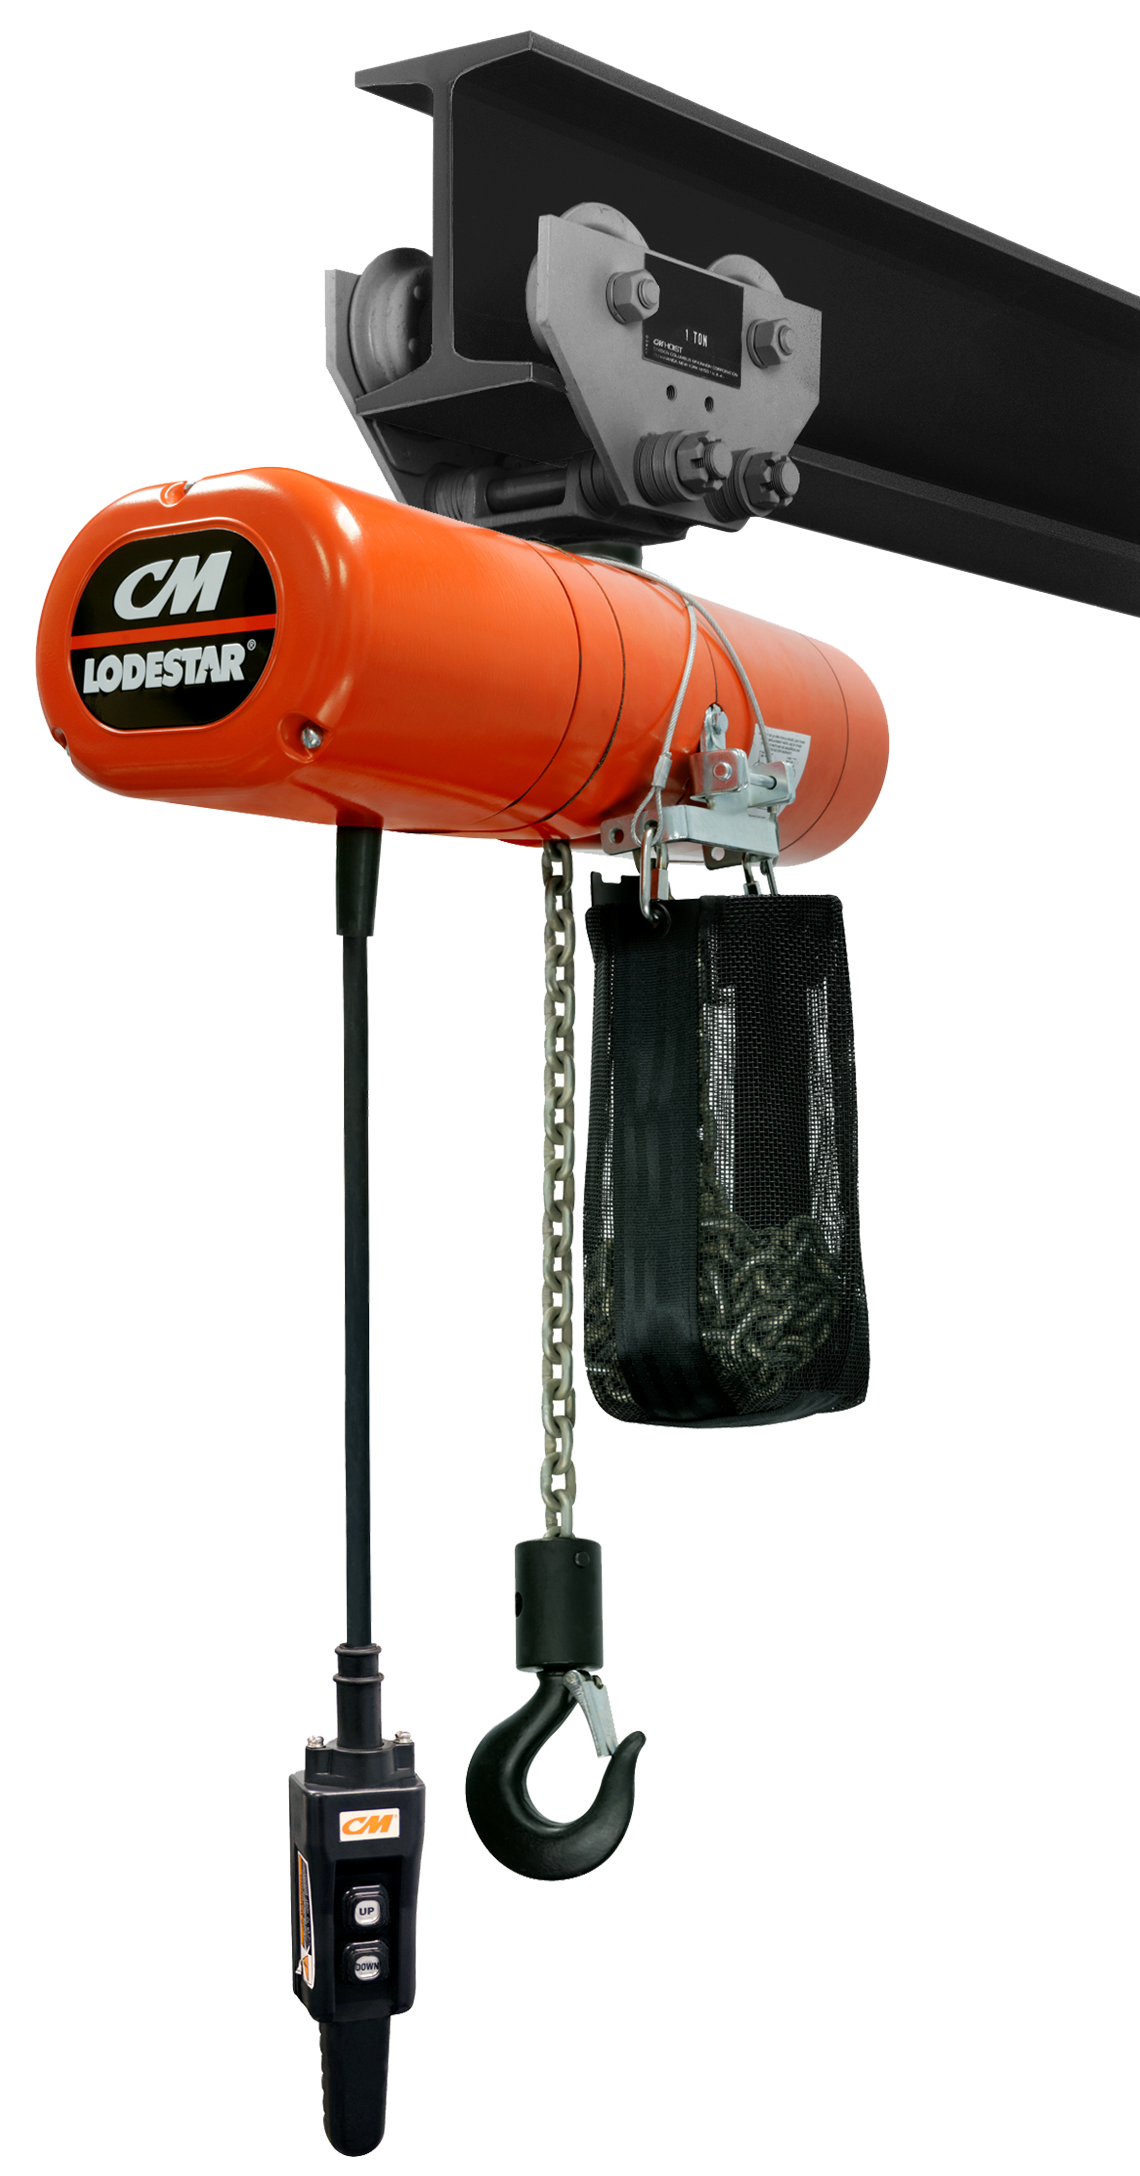 CM LodeStar with Push Trolley and Fabric Chain Container